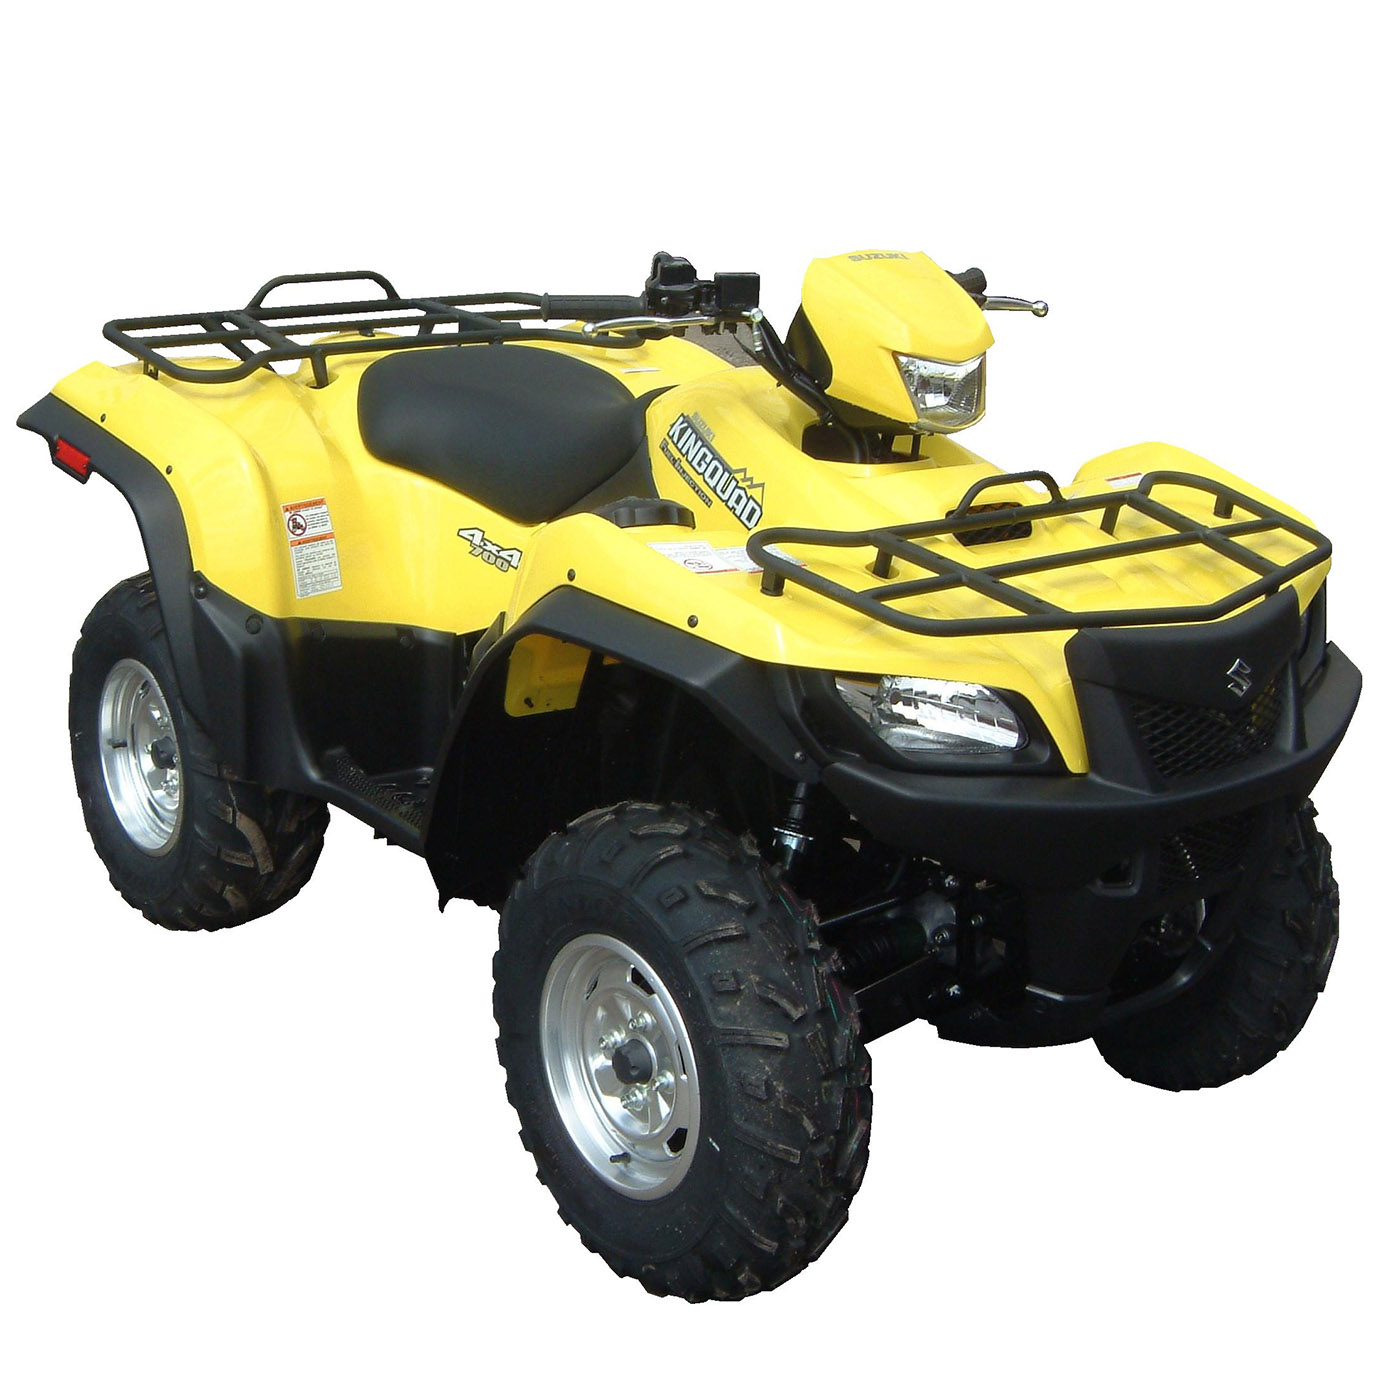 Suzuki King Quad 700 | Best Upcoming Cars Reviews